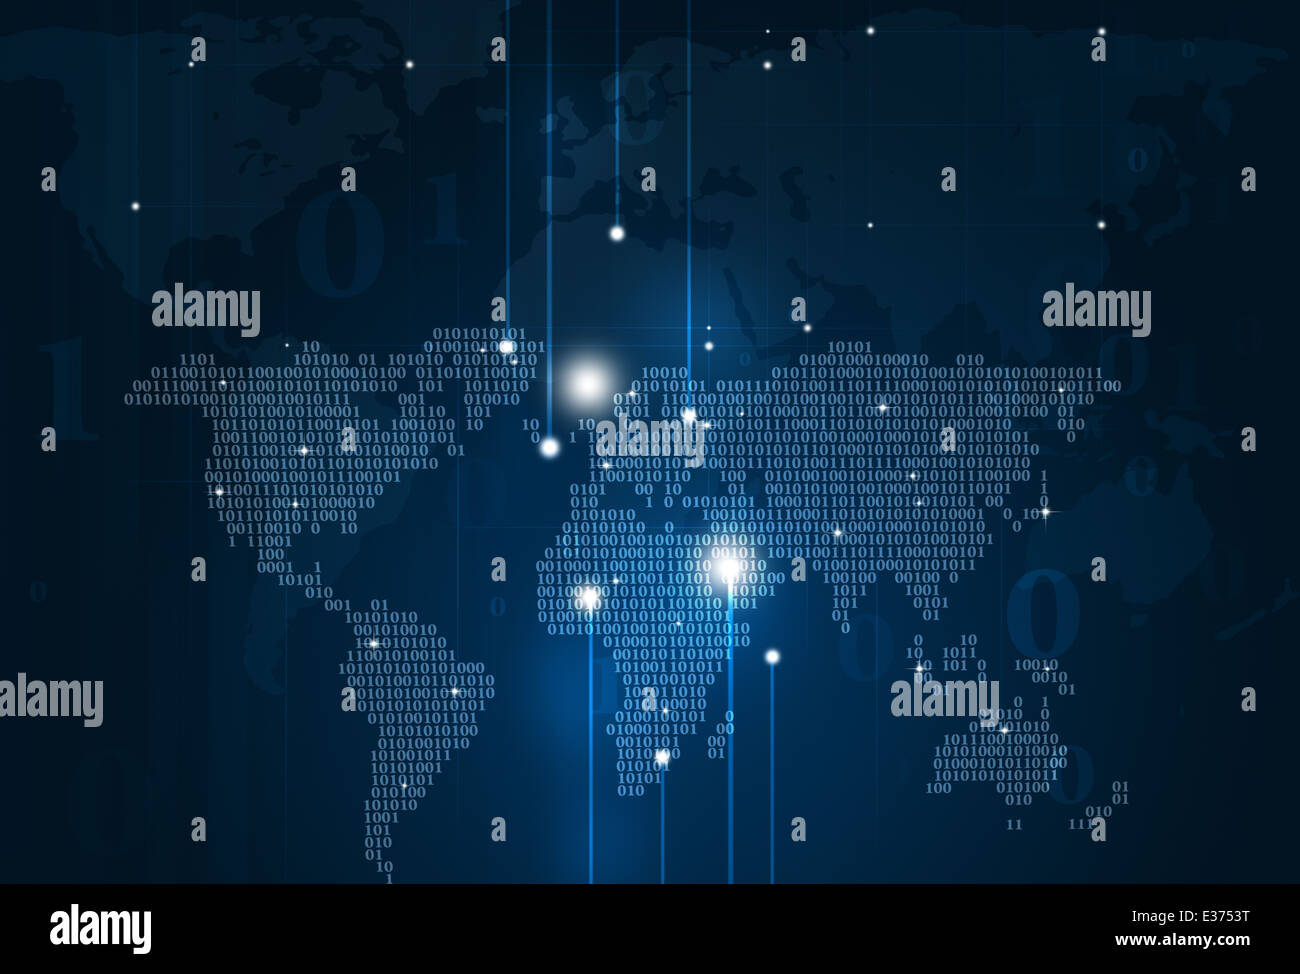 Abstract technology binary code world map on dark blue background abstract technology binary code world map on dark blue background gumiabroncs Gallery